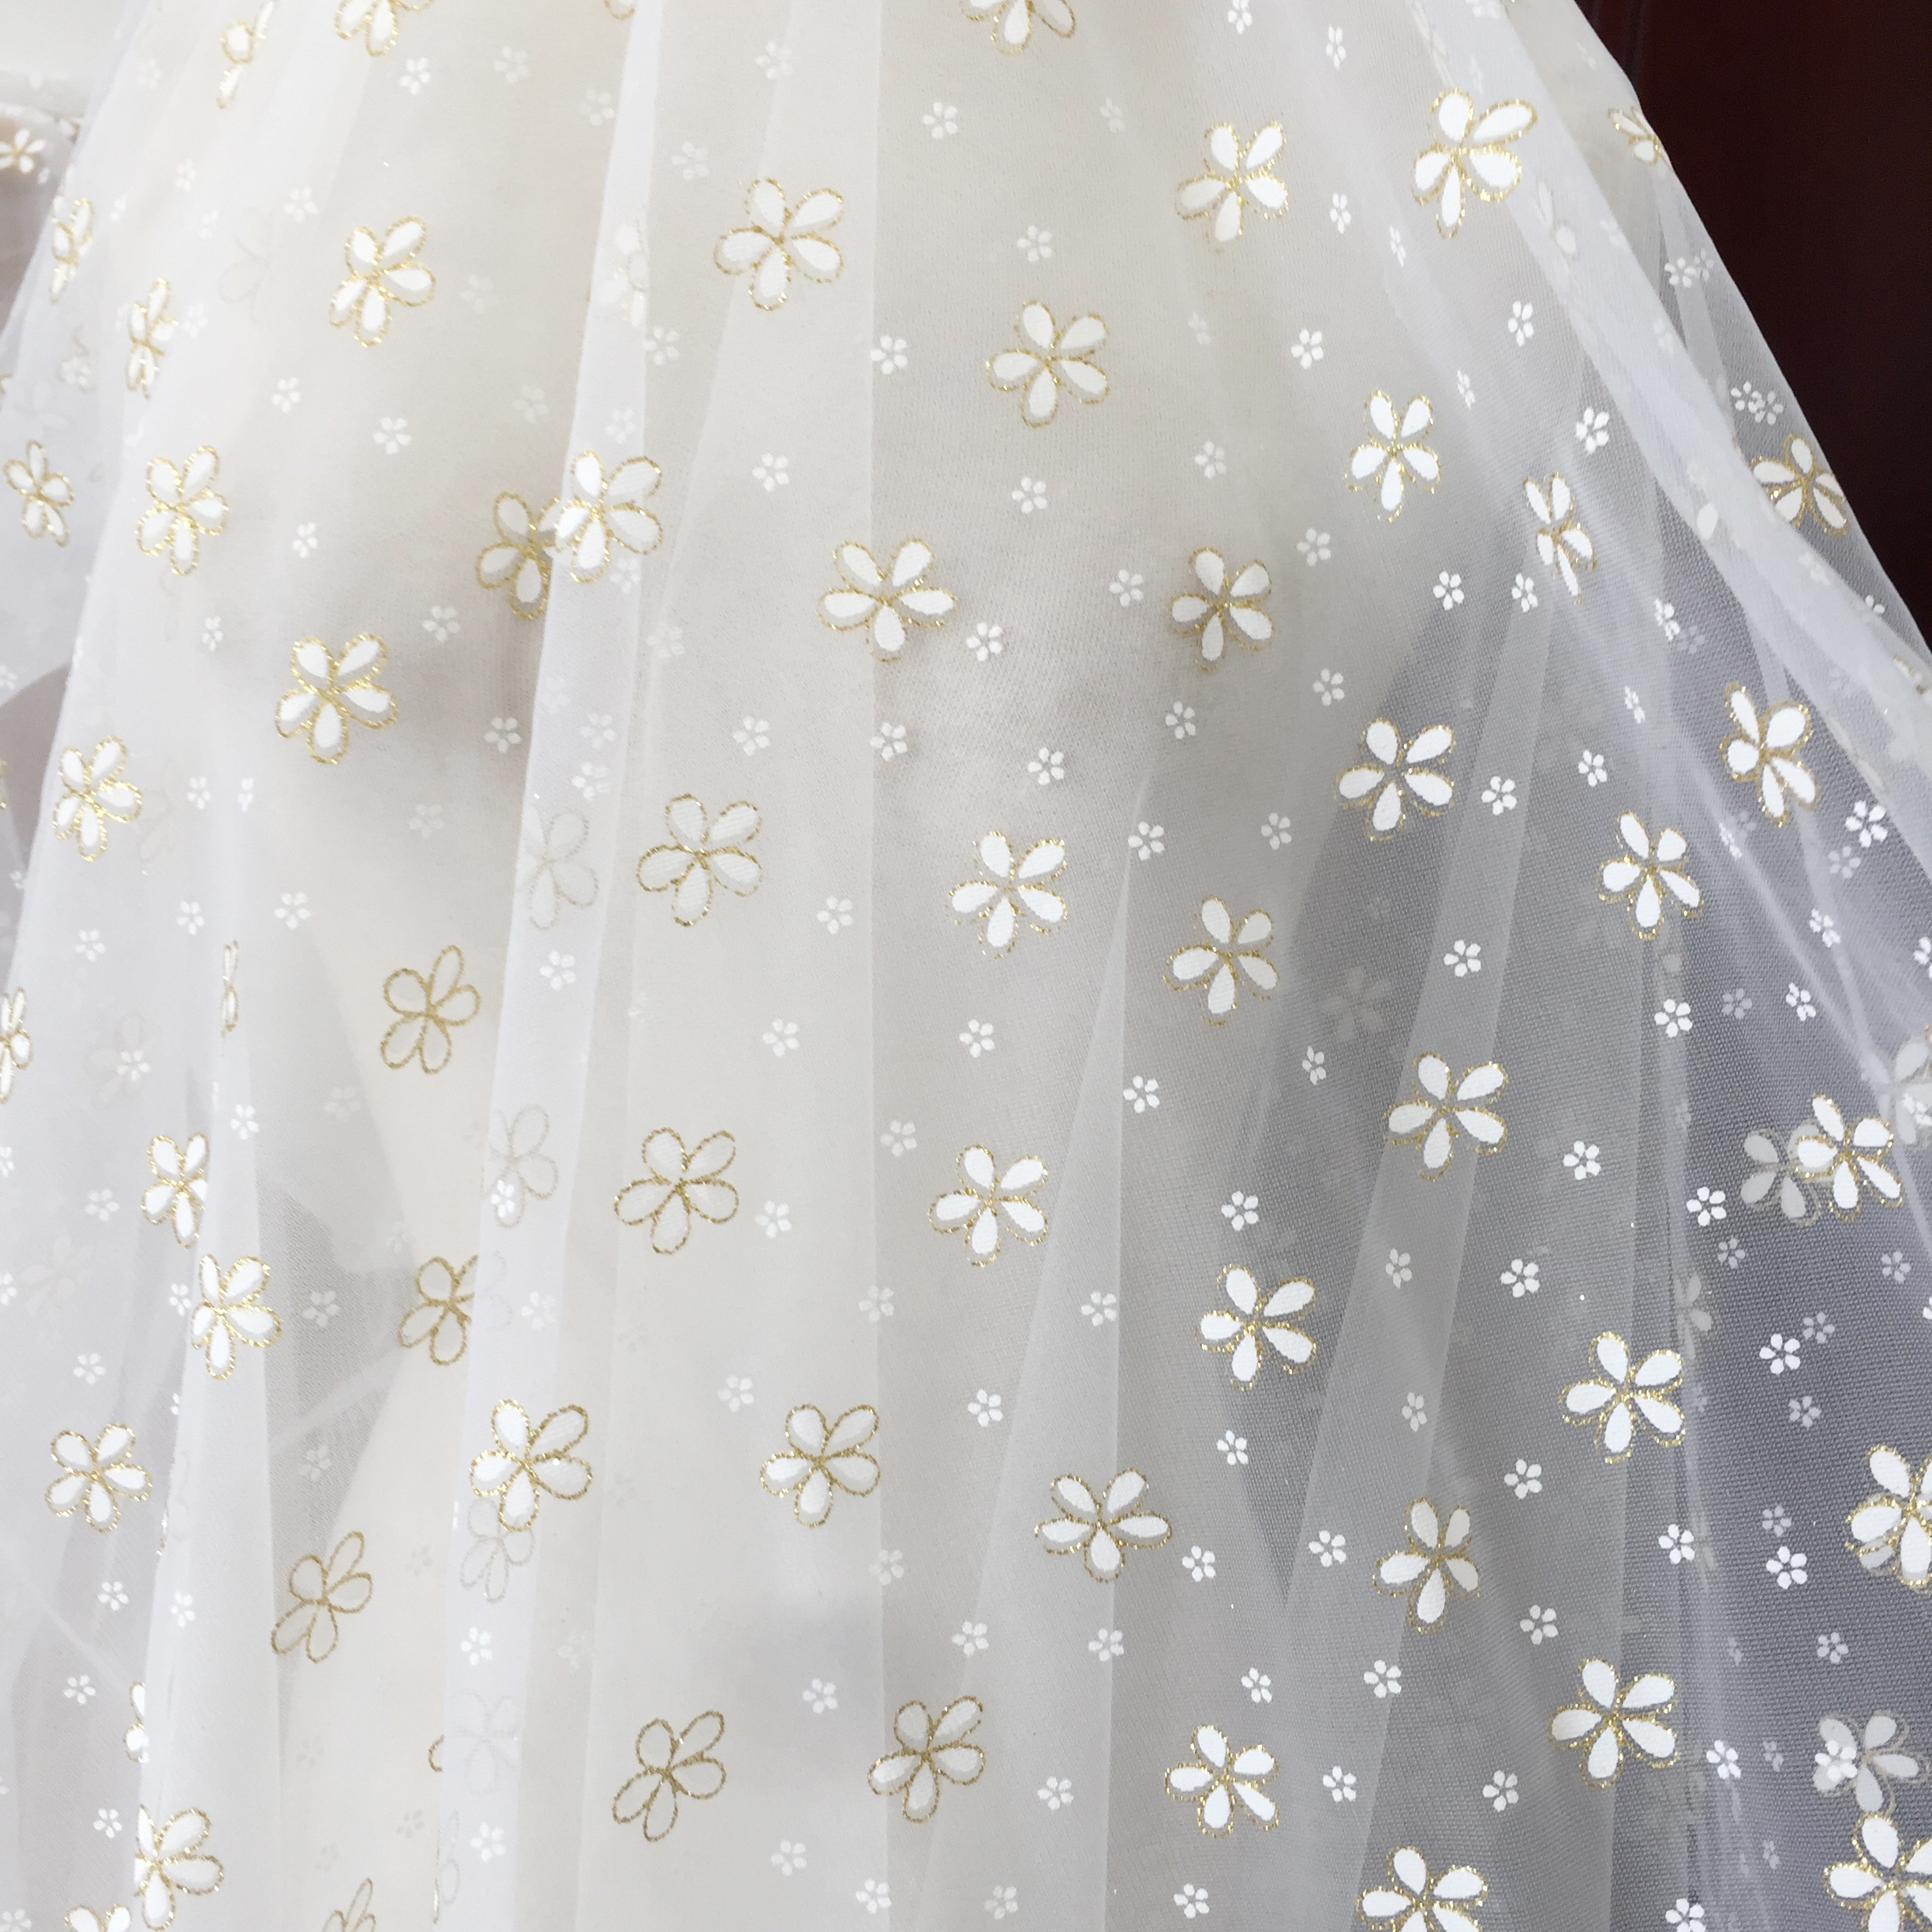 5 Yards Daisy Tulle Lace Fabric with Gold Glitter Embroidery for Bridal Gown Prom Dress DIY Craft 150cm Wide-5